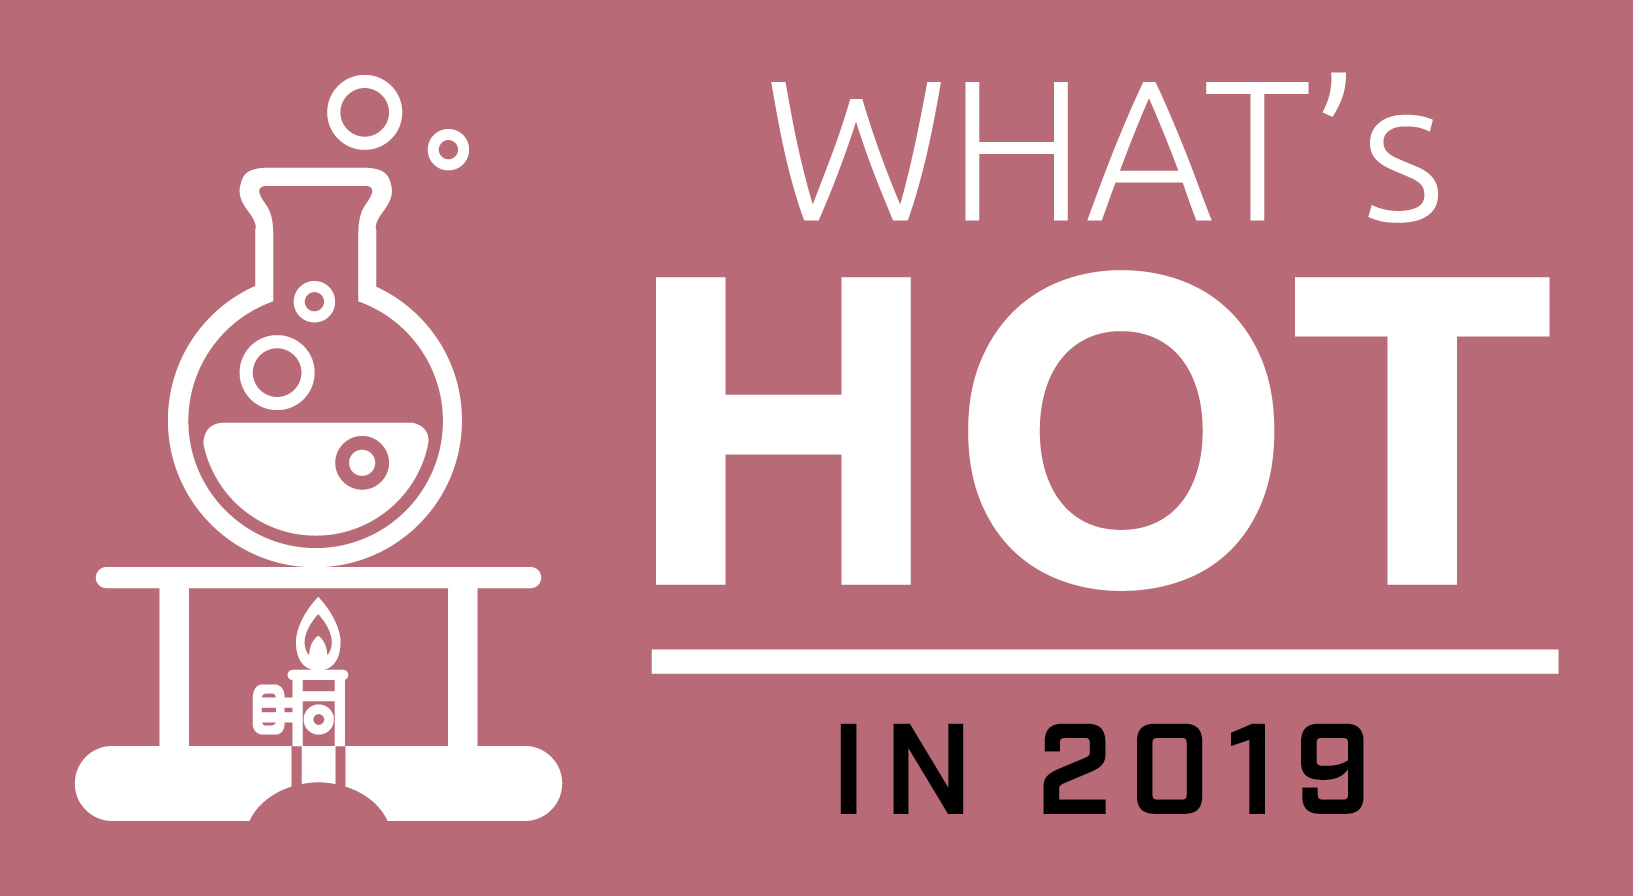 What's hot in 2019 logo